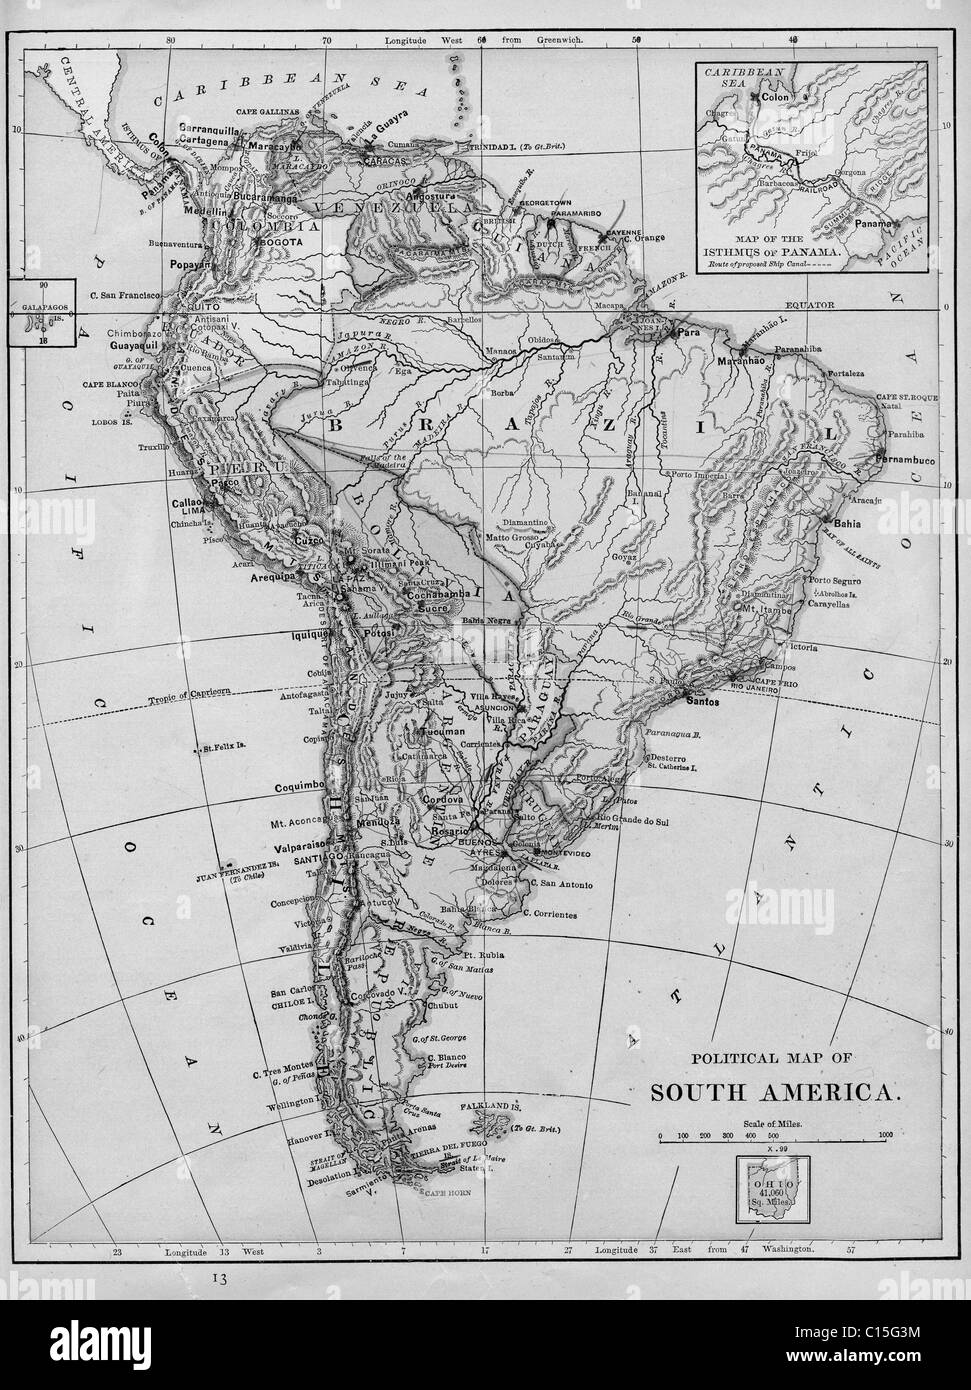 Old Map Of South America From Original Geography Textbook - Old maps of america